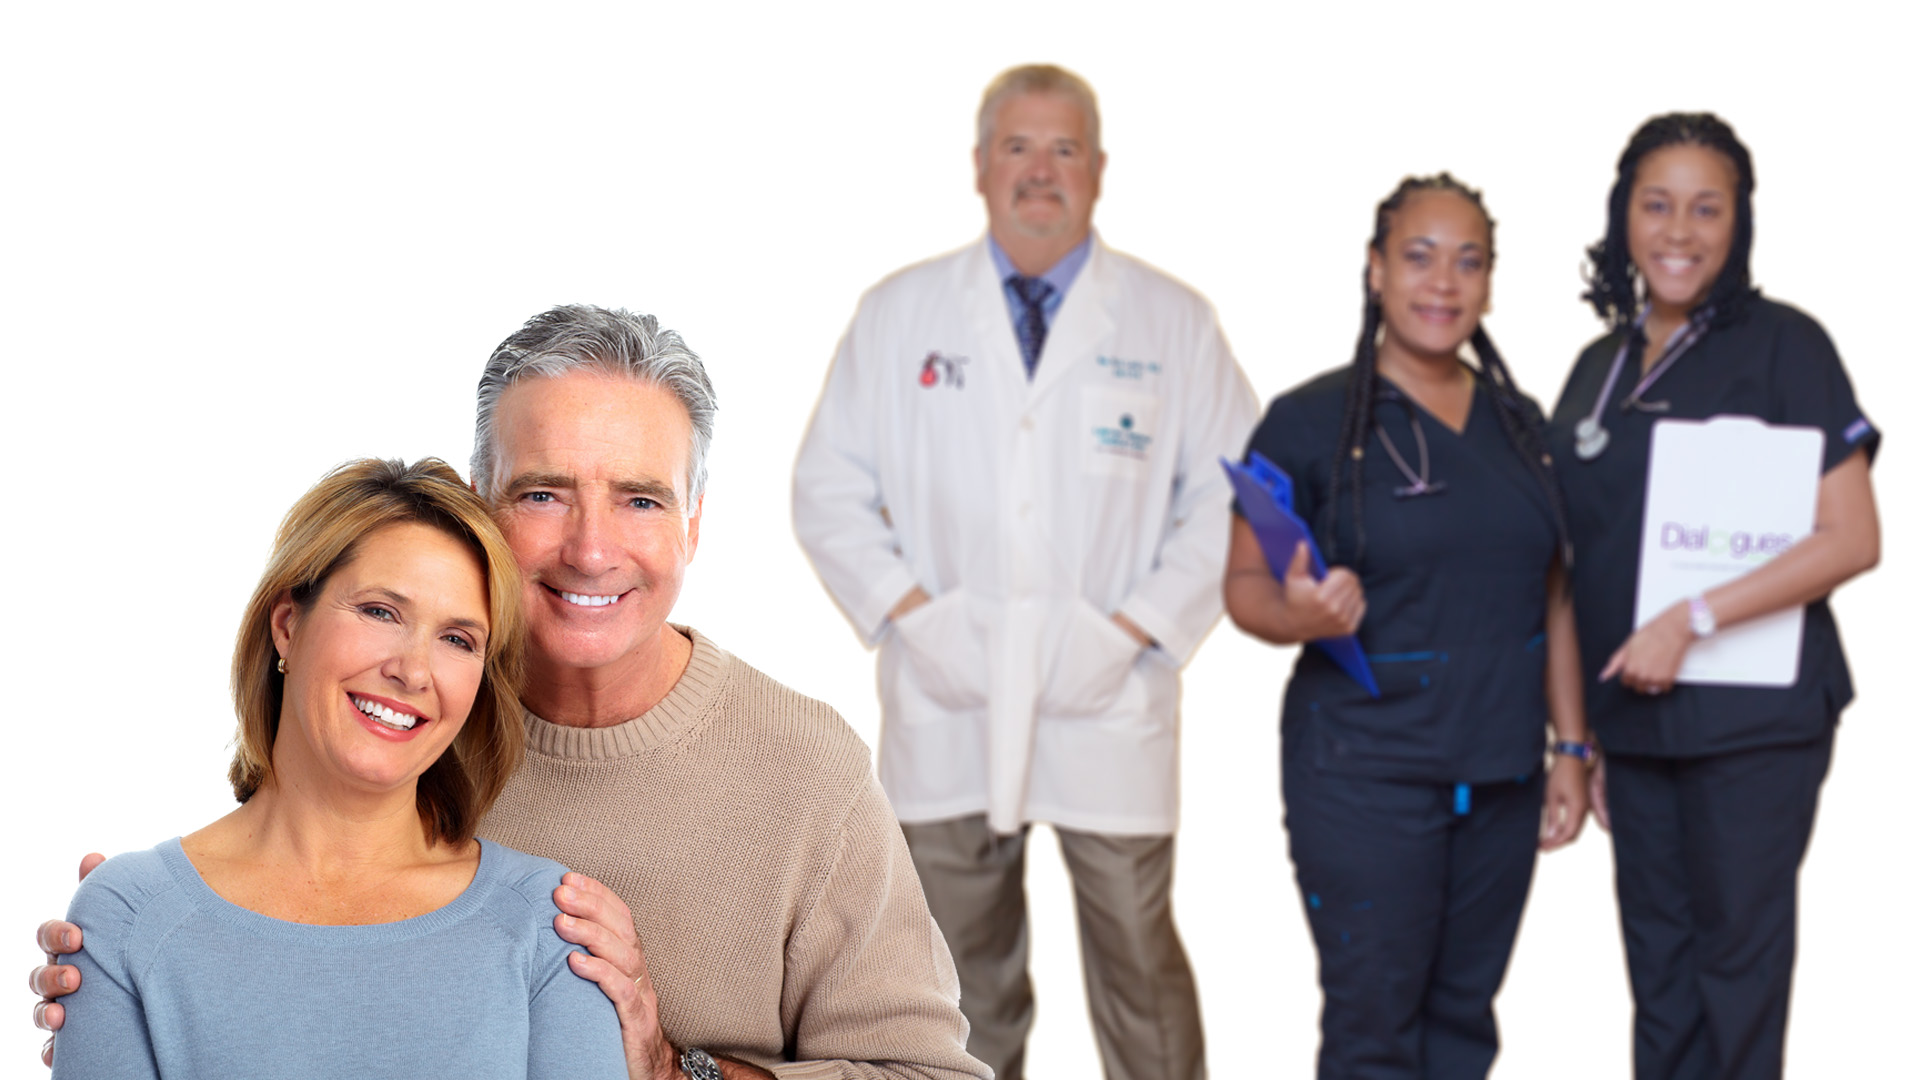 hormone replacement therapy happy smiling couple with Dr. Nick Landry's medical team